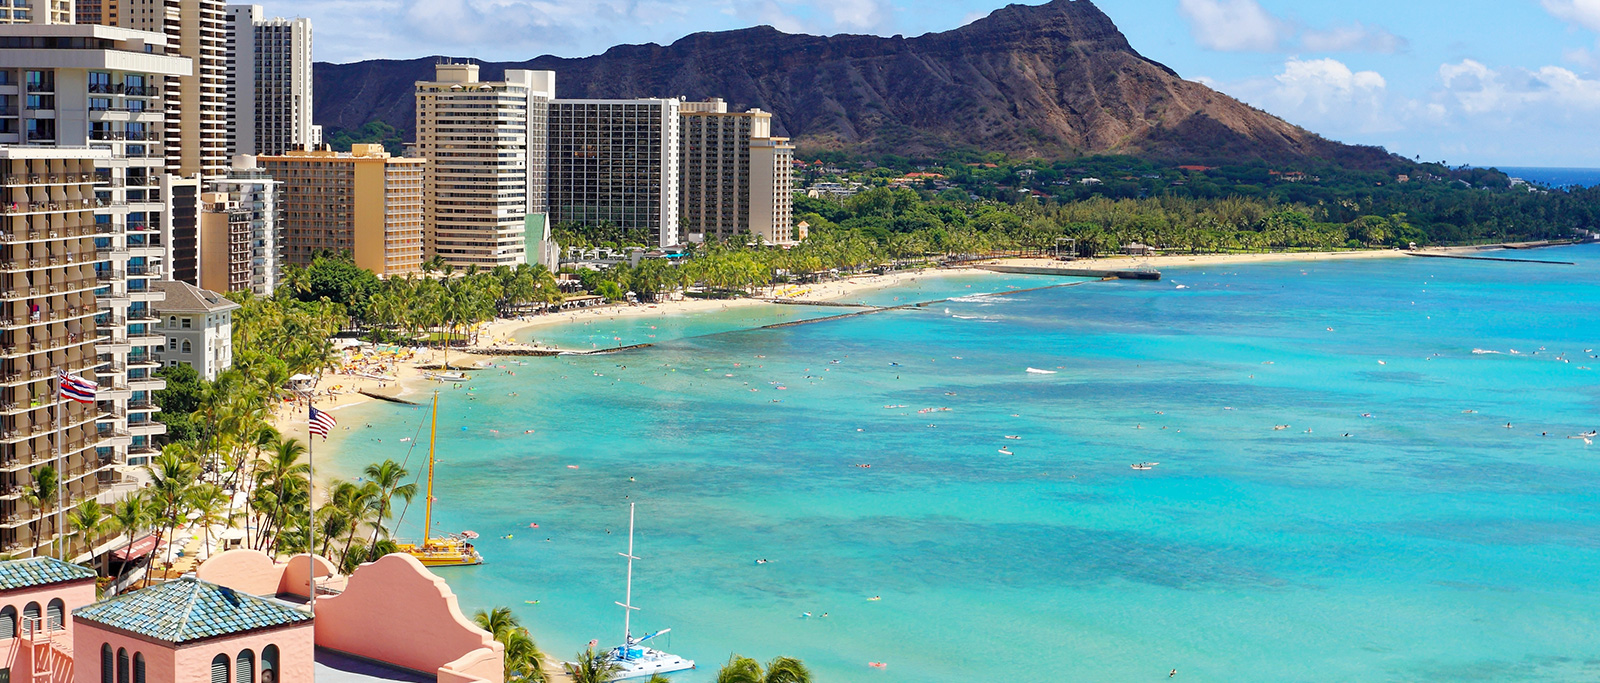 Location of Honolulu Hawaii Hotel